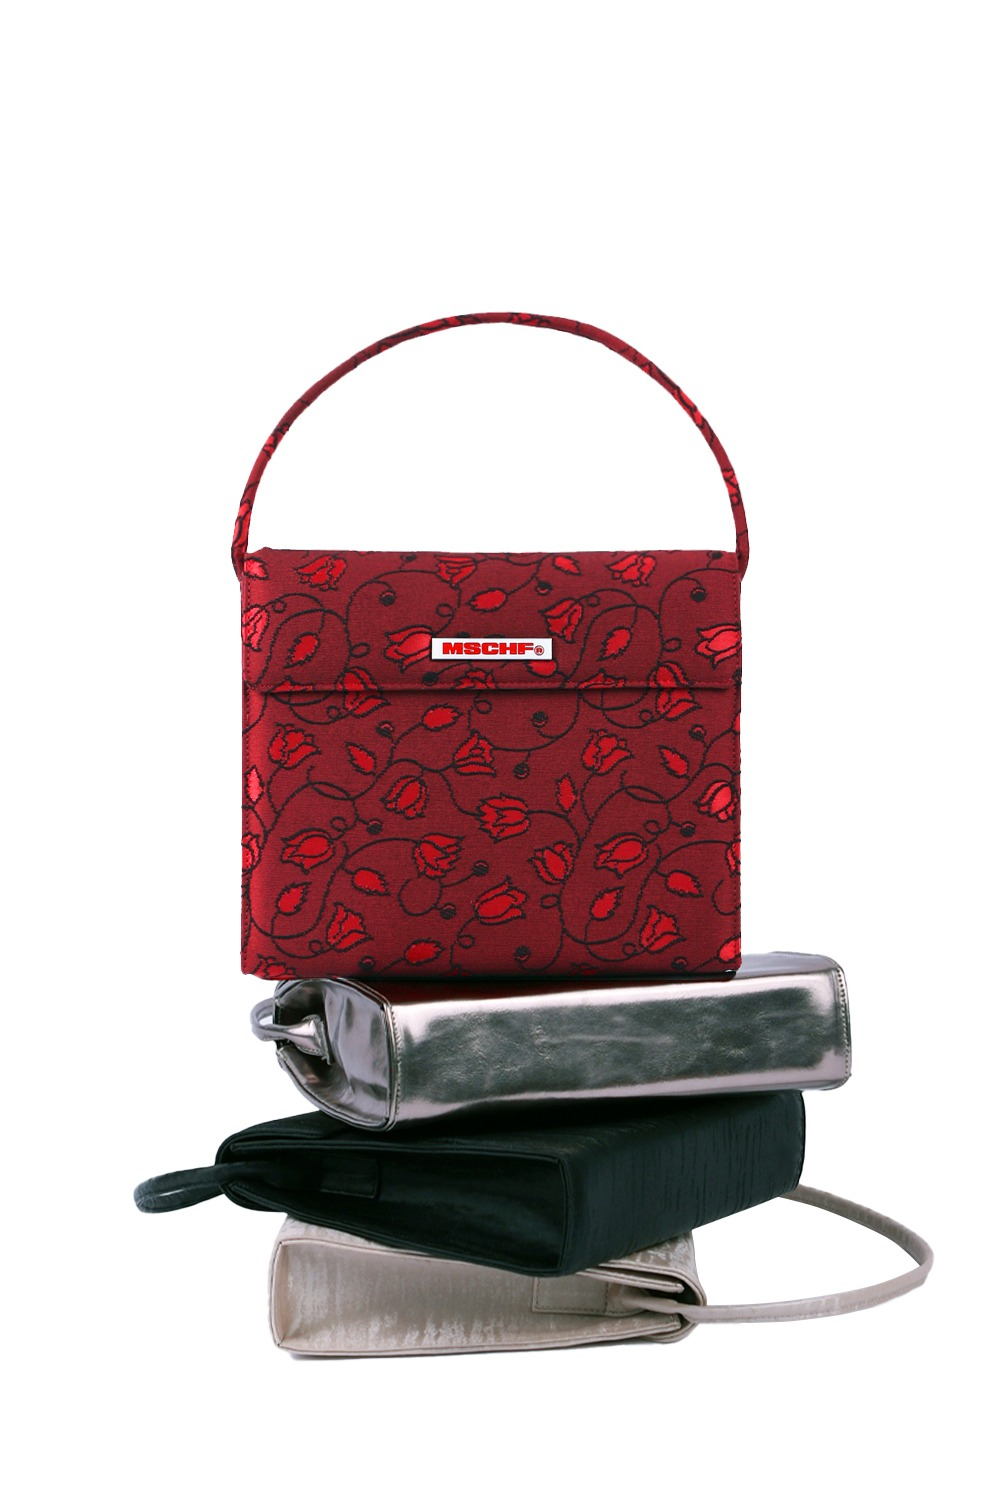 EVENING BAG_jacquard floral crimson red